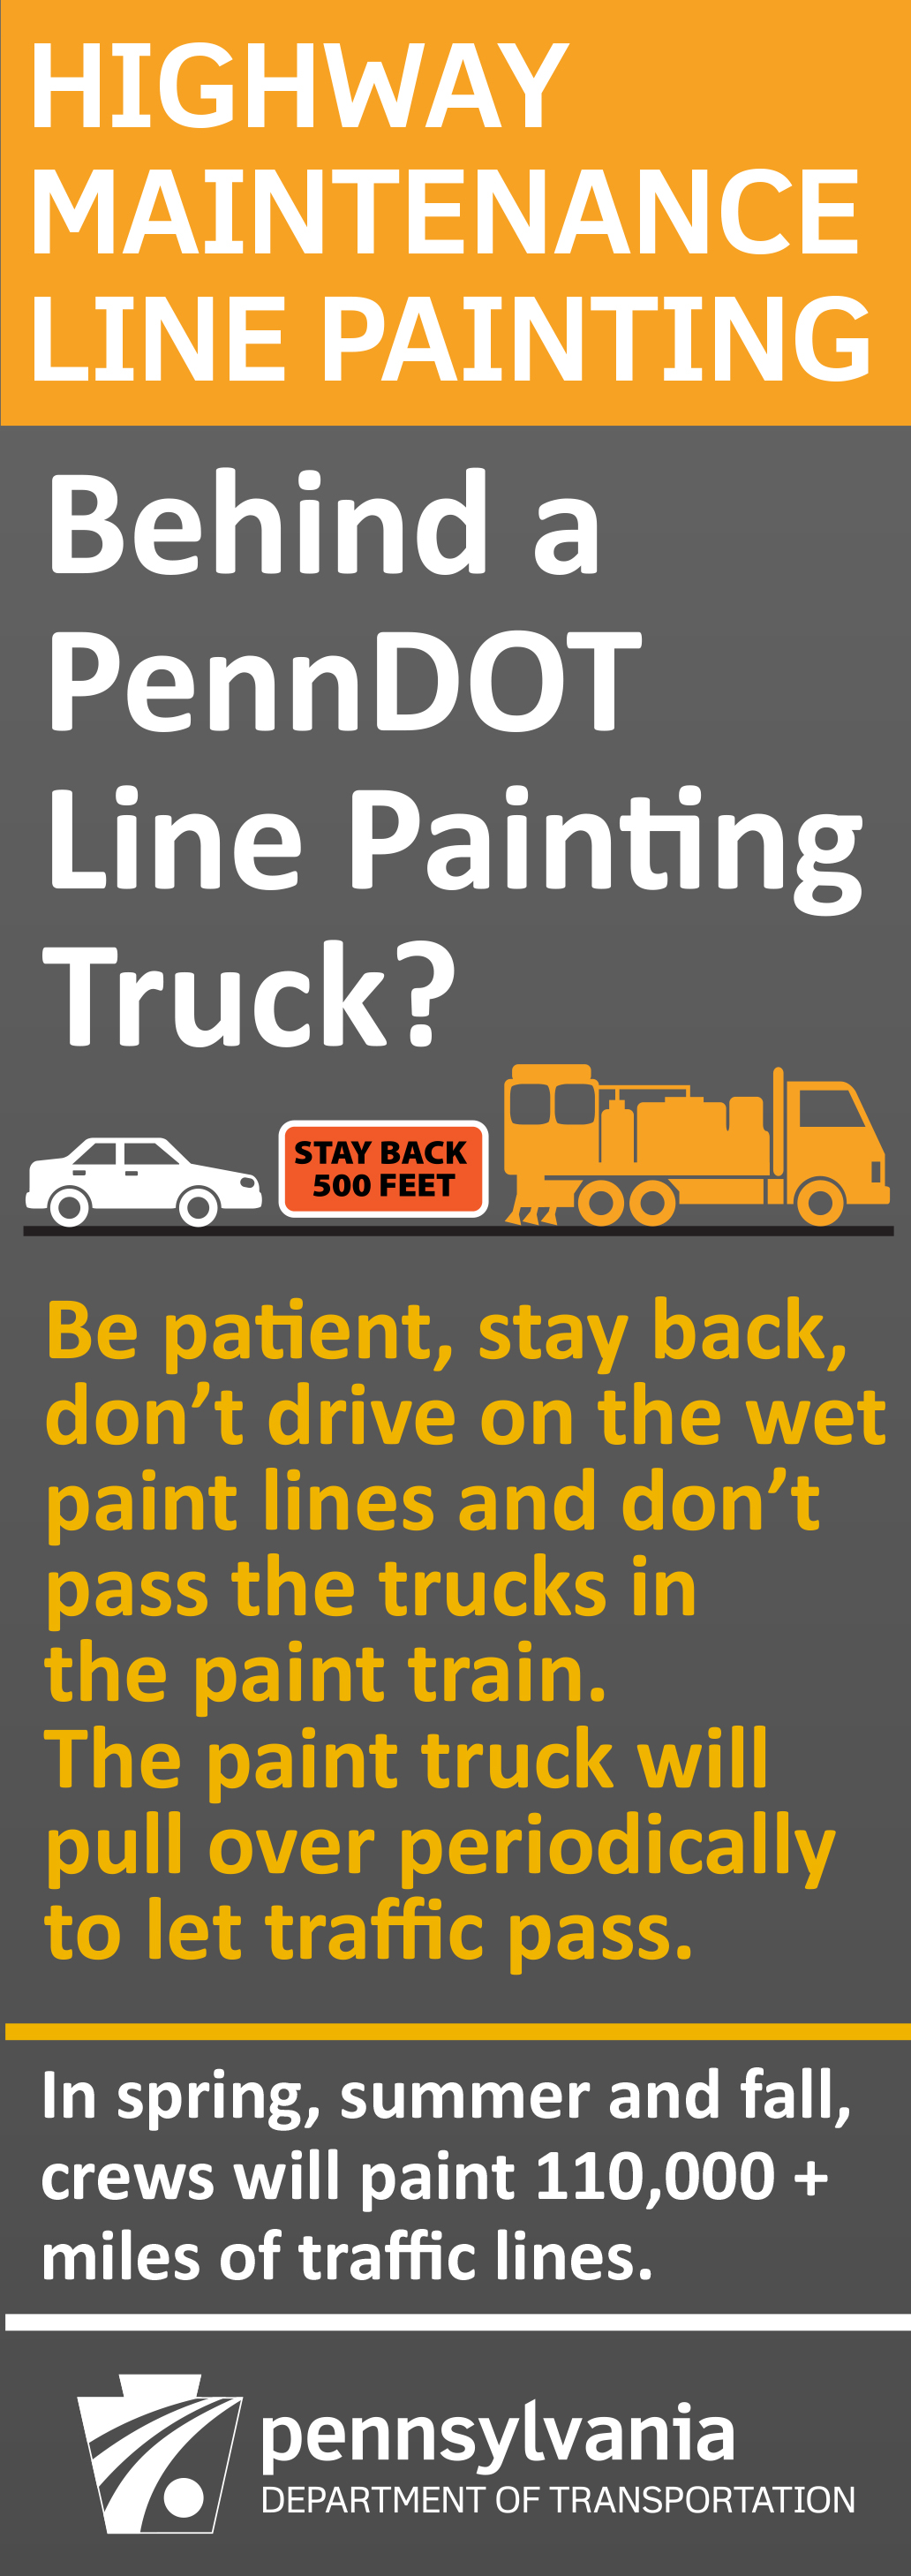 line painting info graphic